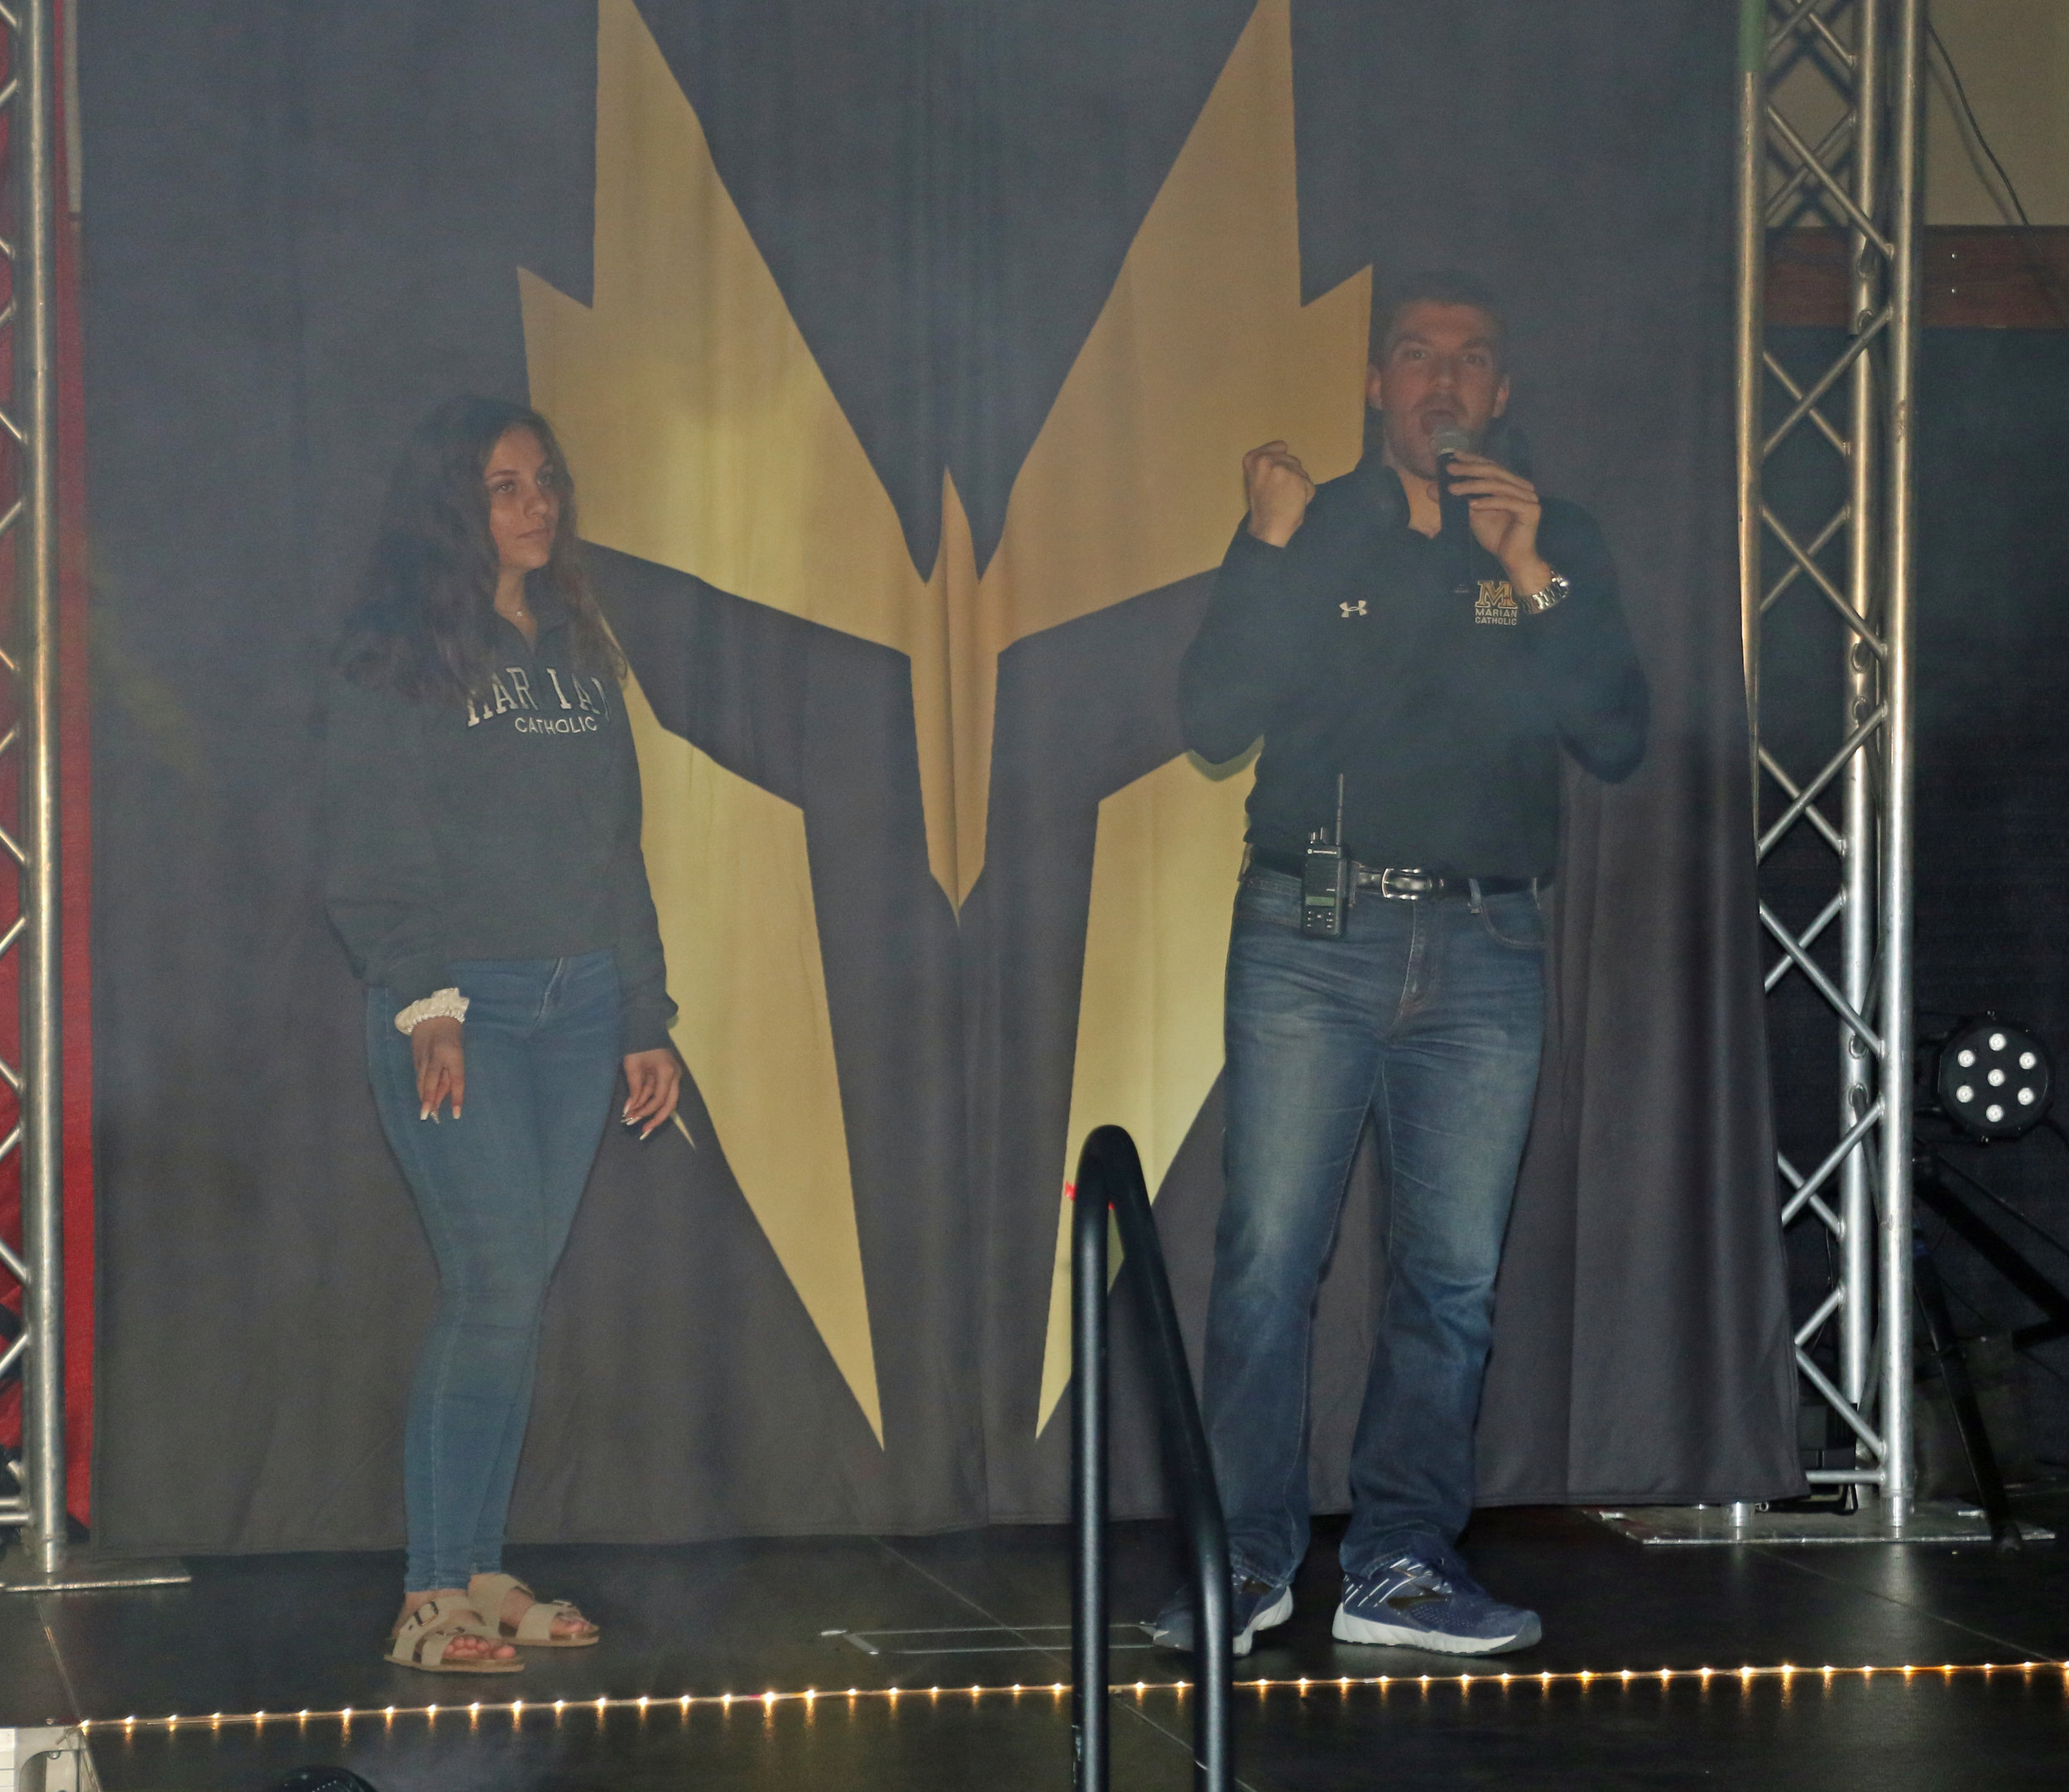 Warrior Wrestling promoter Steve Tortorello, right, introduces the show.